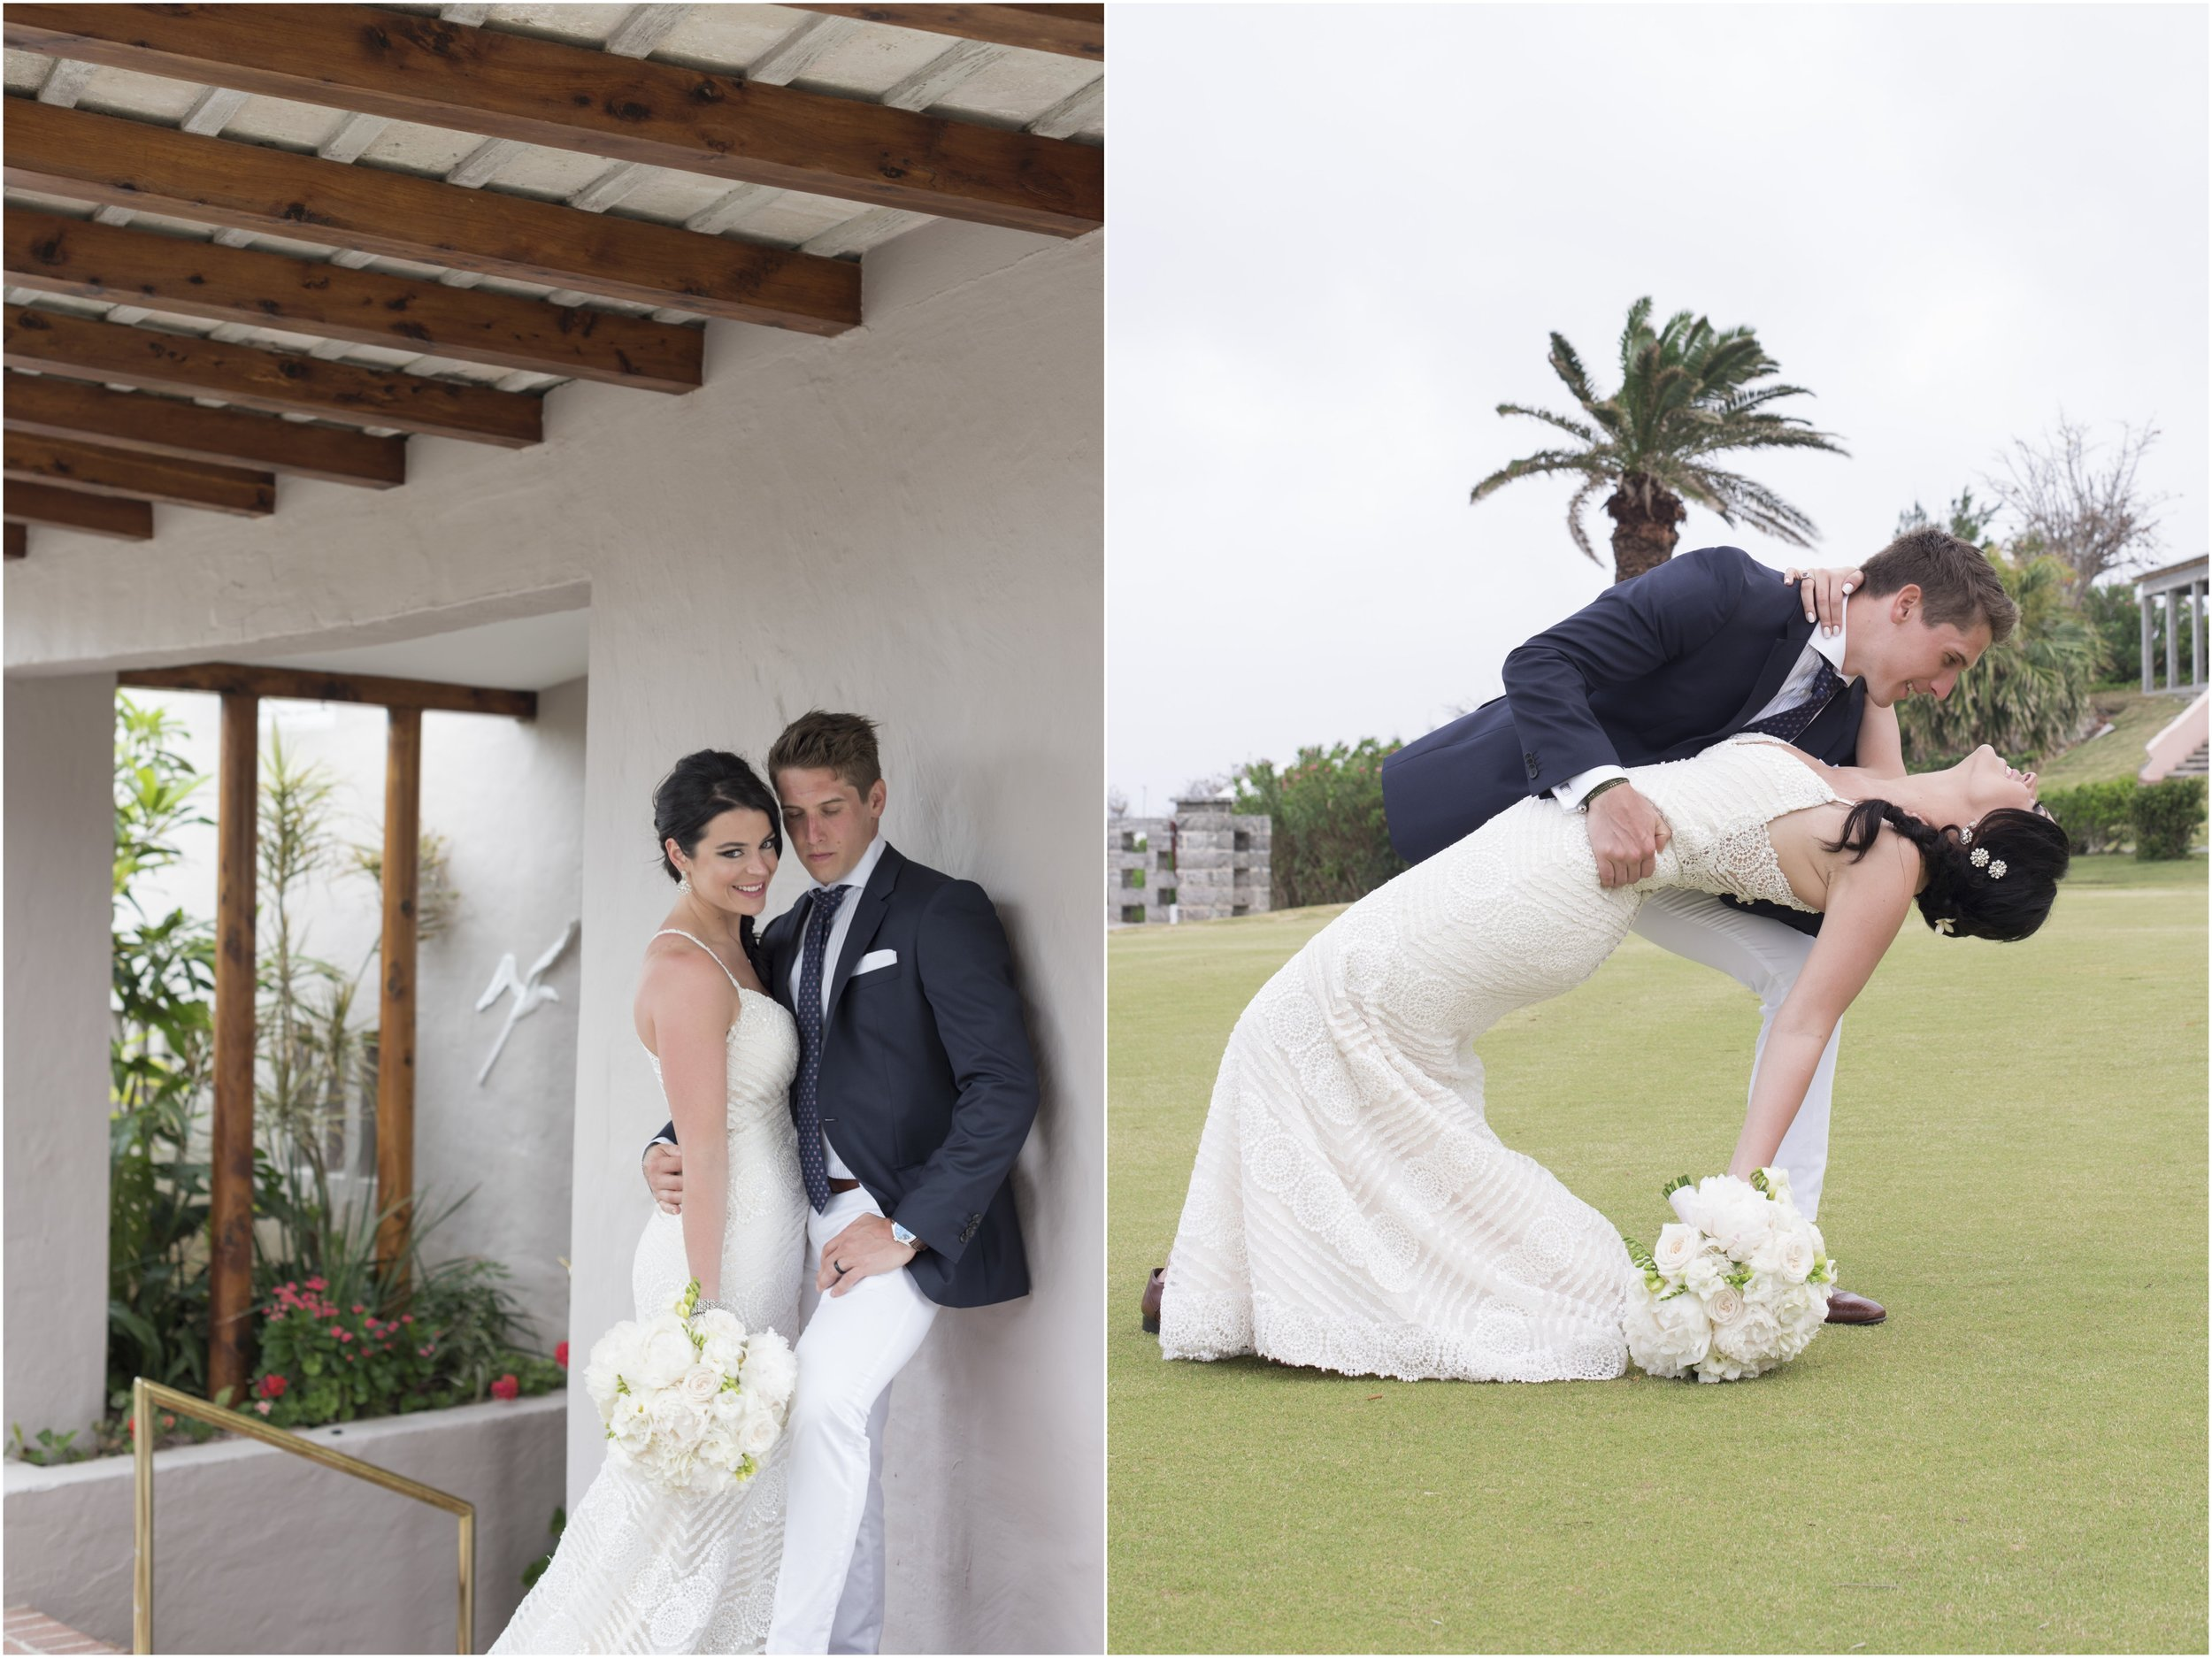 ©FianderFoto_Alyse_Stevie_Wedding_Bermuda_35.jpg